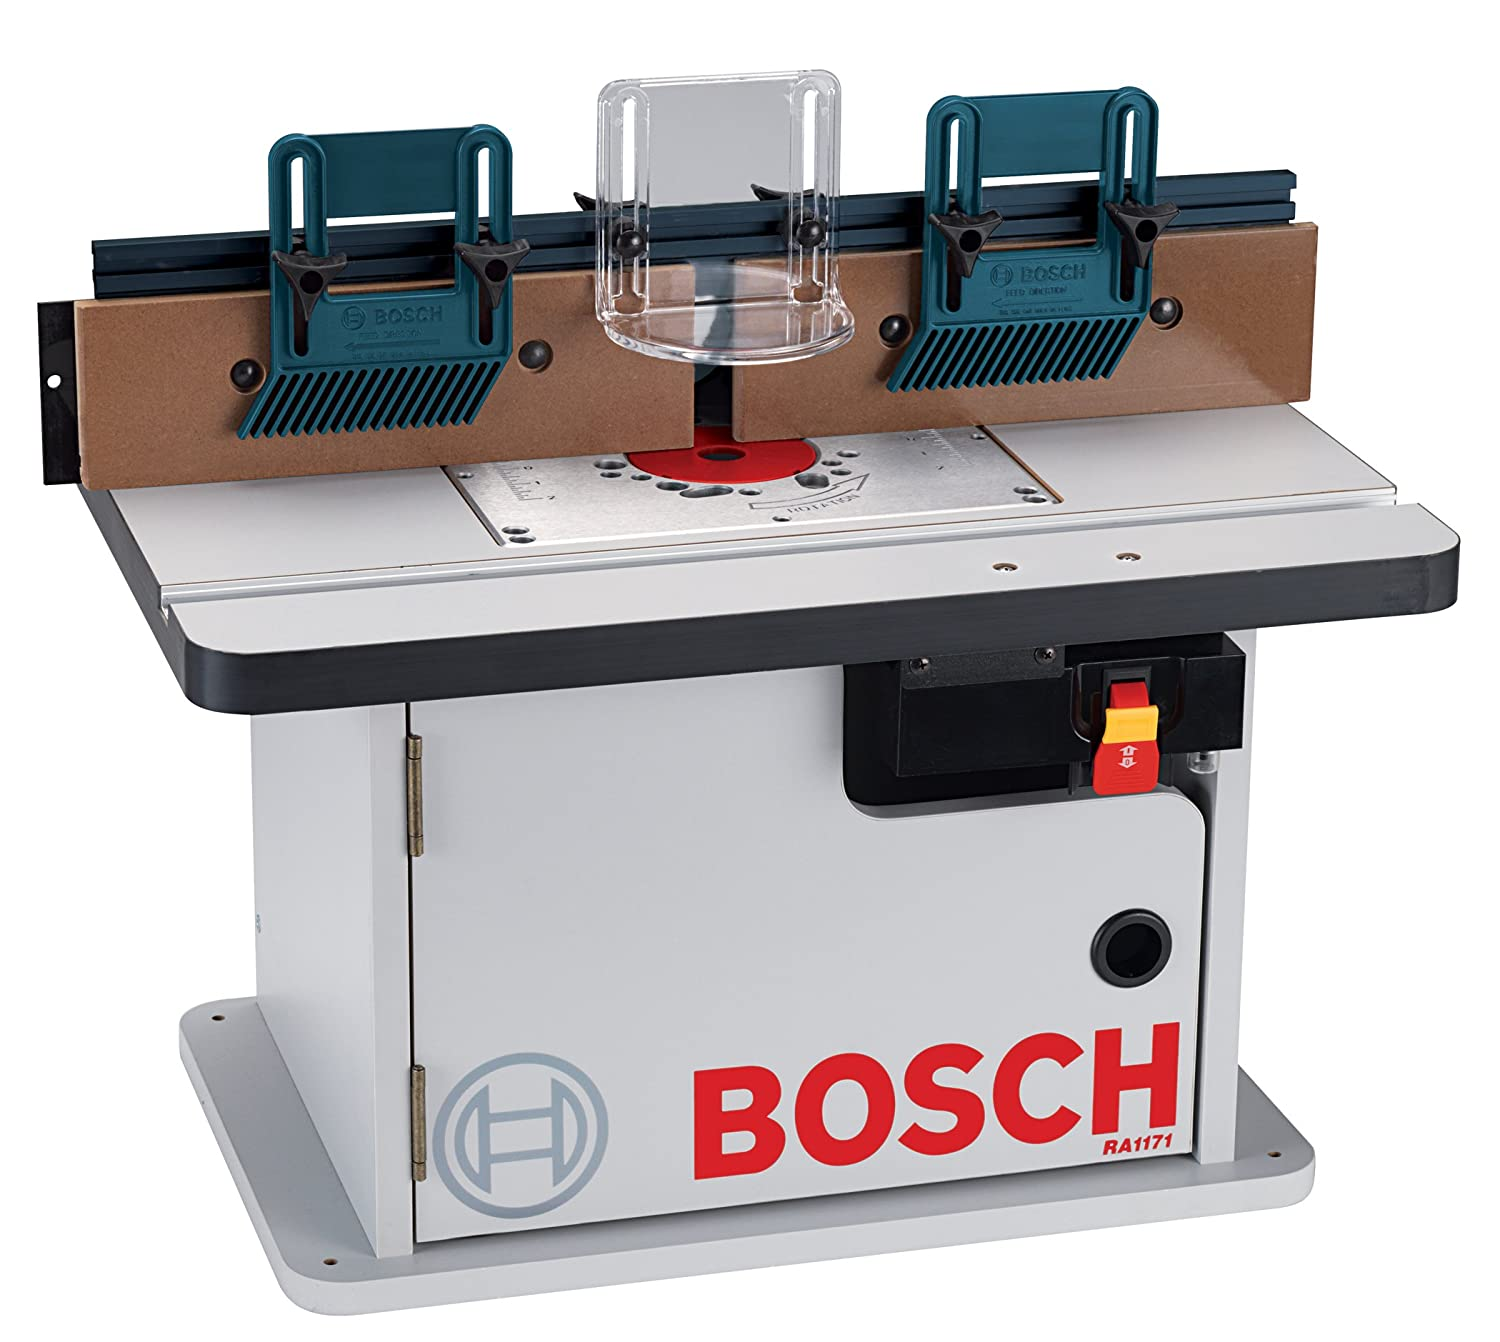 Bosch cabinet style router table ra1171 power router accessories bosch cabinet style router table ra1171 power router accessories amazon greentooth Image collections